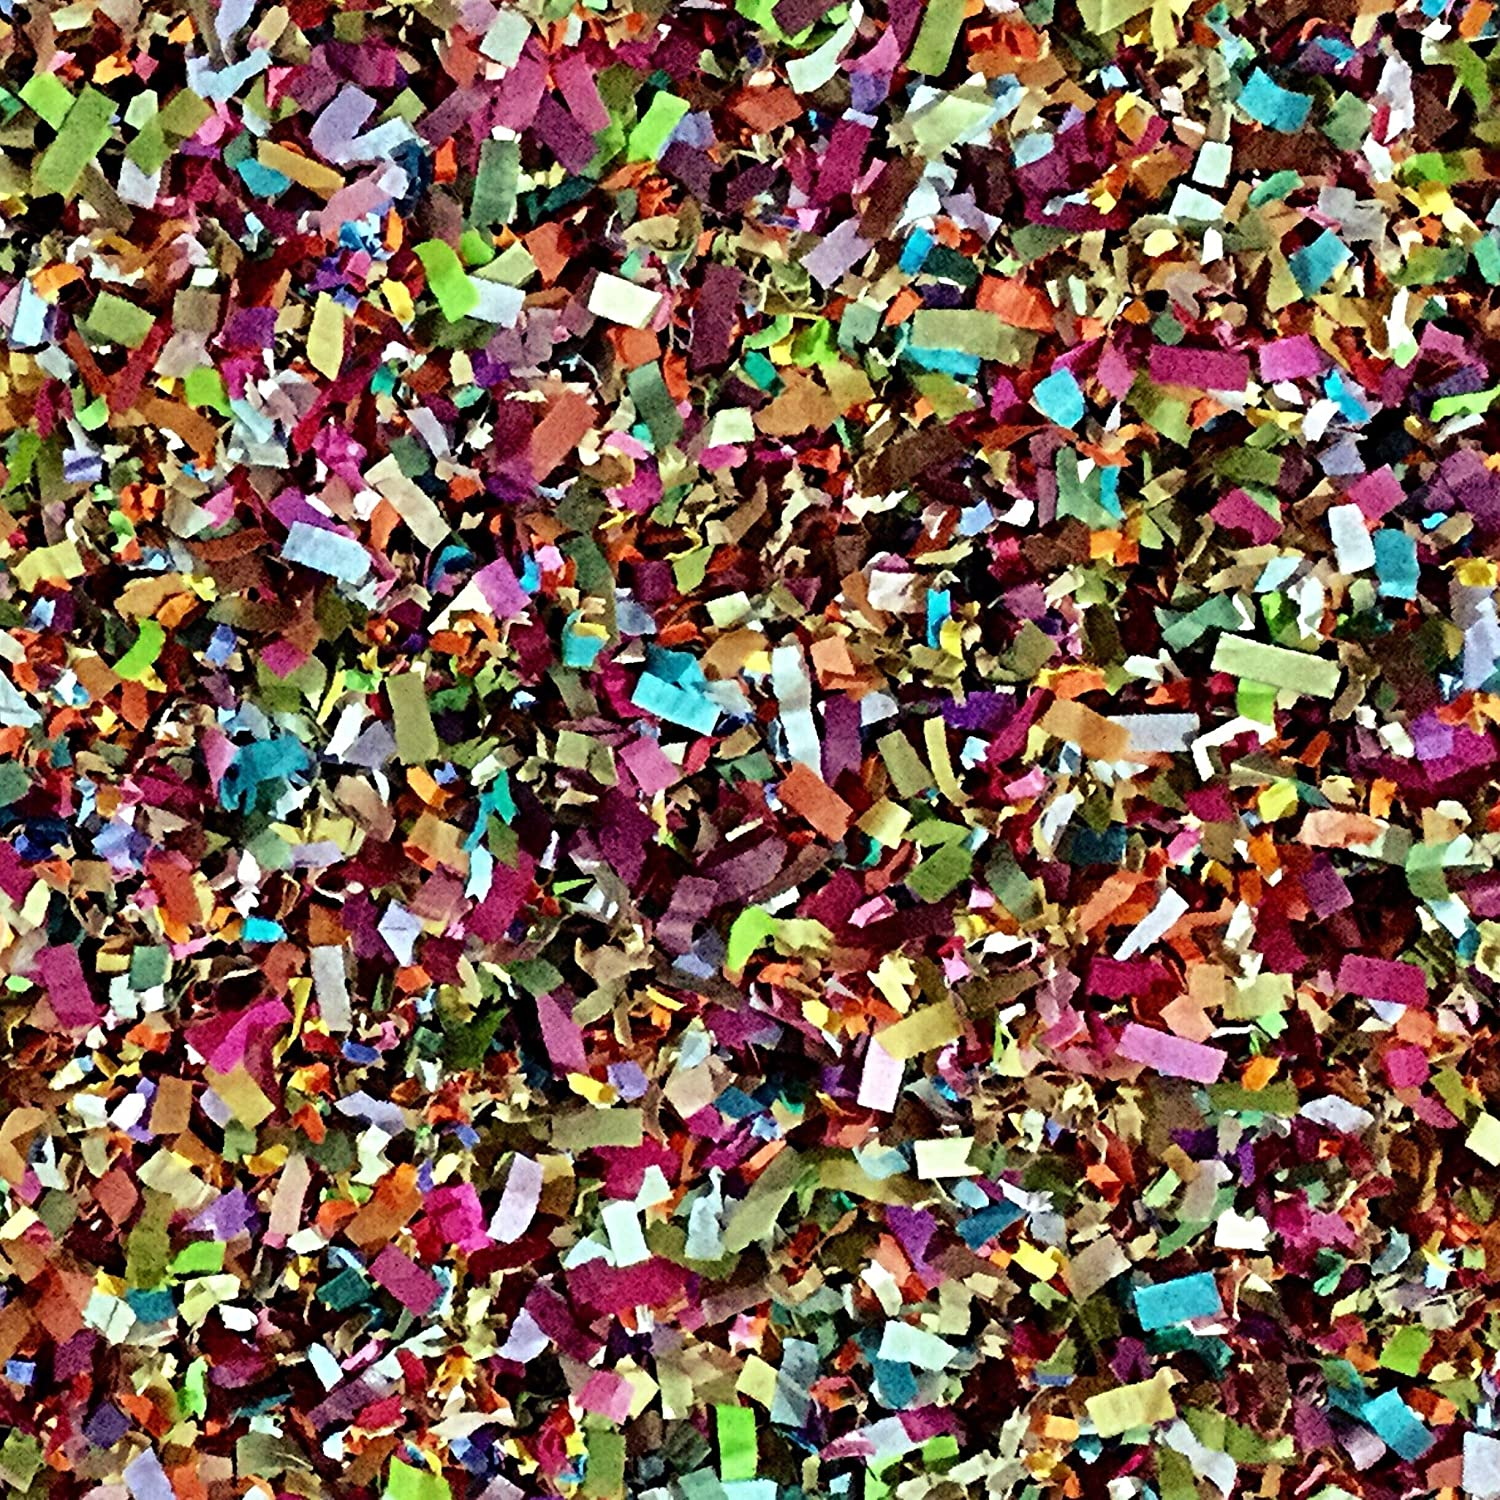 Enchanted Forest Confetti Mix Burgundy Forest Green Floral Biodegradable Wedding Eco Throwing Party Decorations Send Off Table Decor Bulk Pack